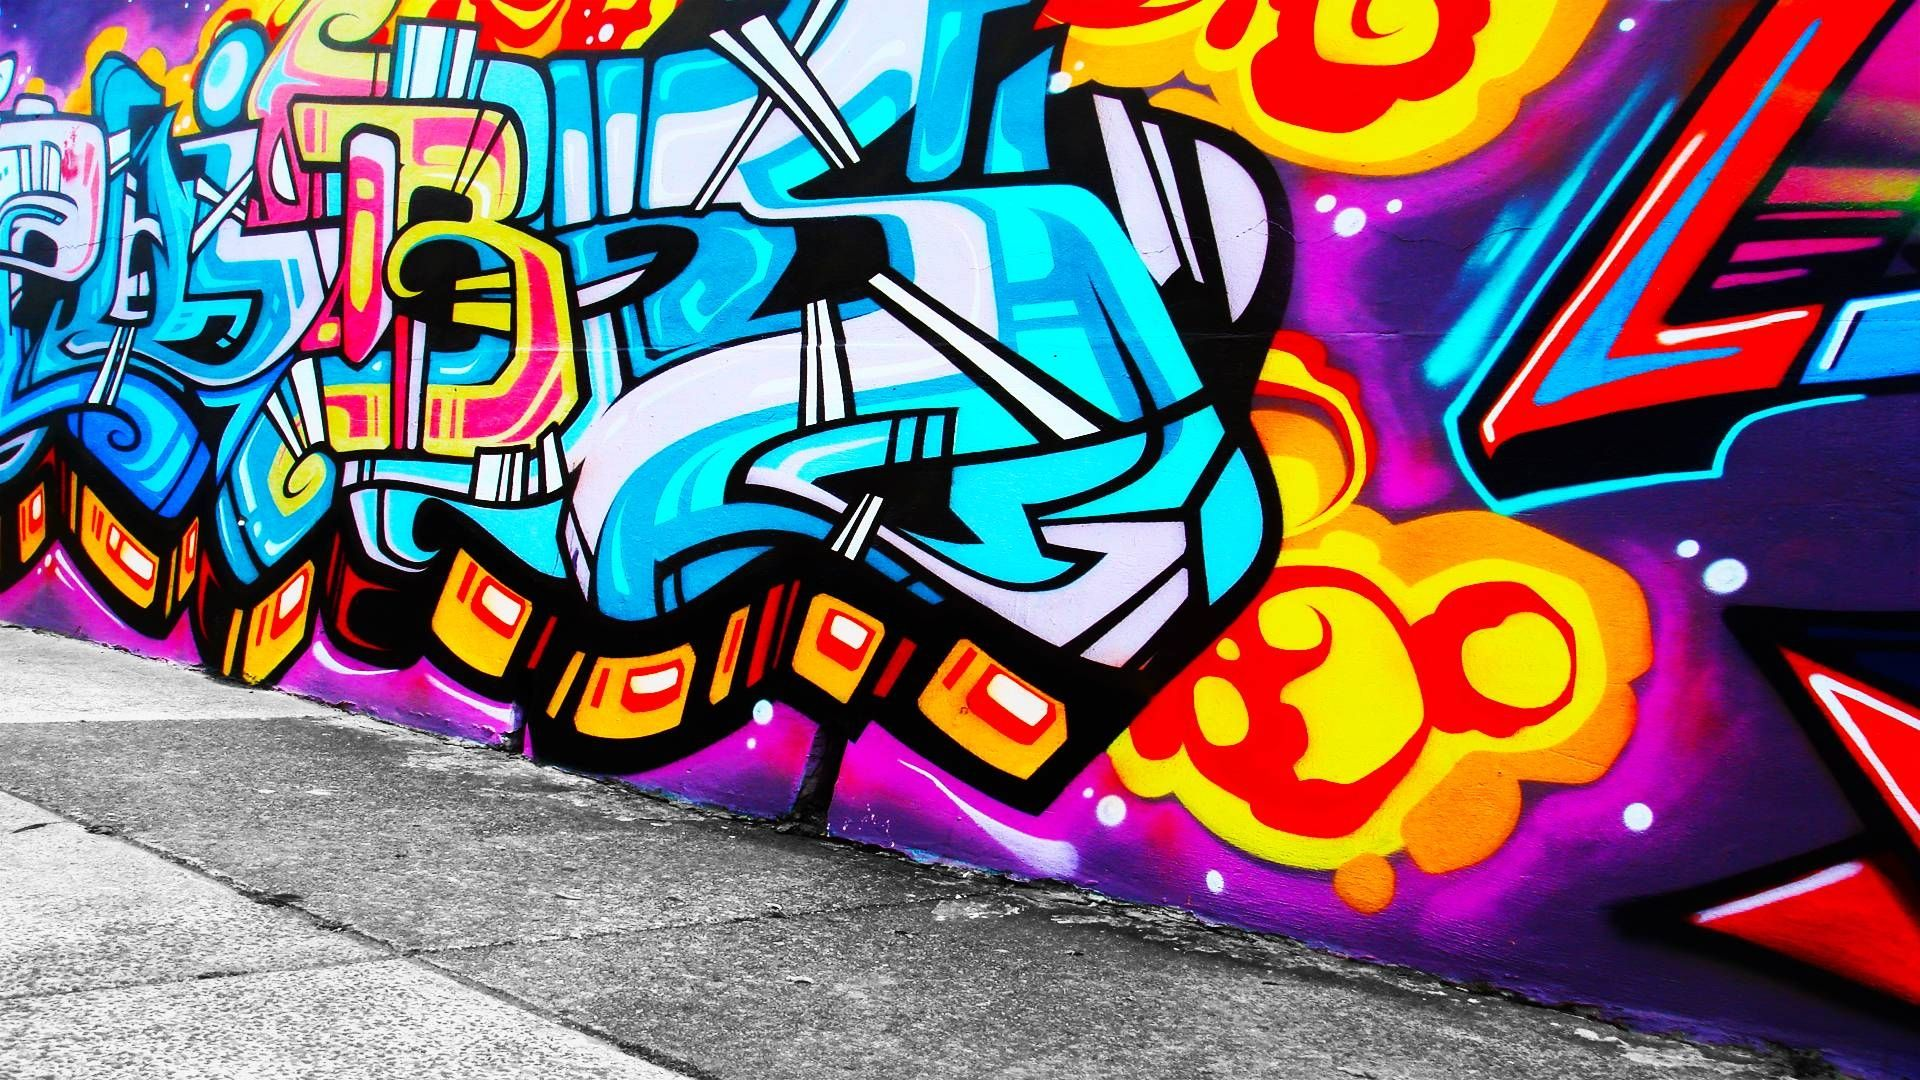 cool graffiti Wallpaper HD Download Free cool graffiti